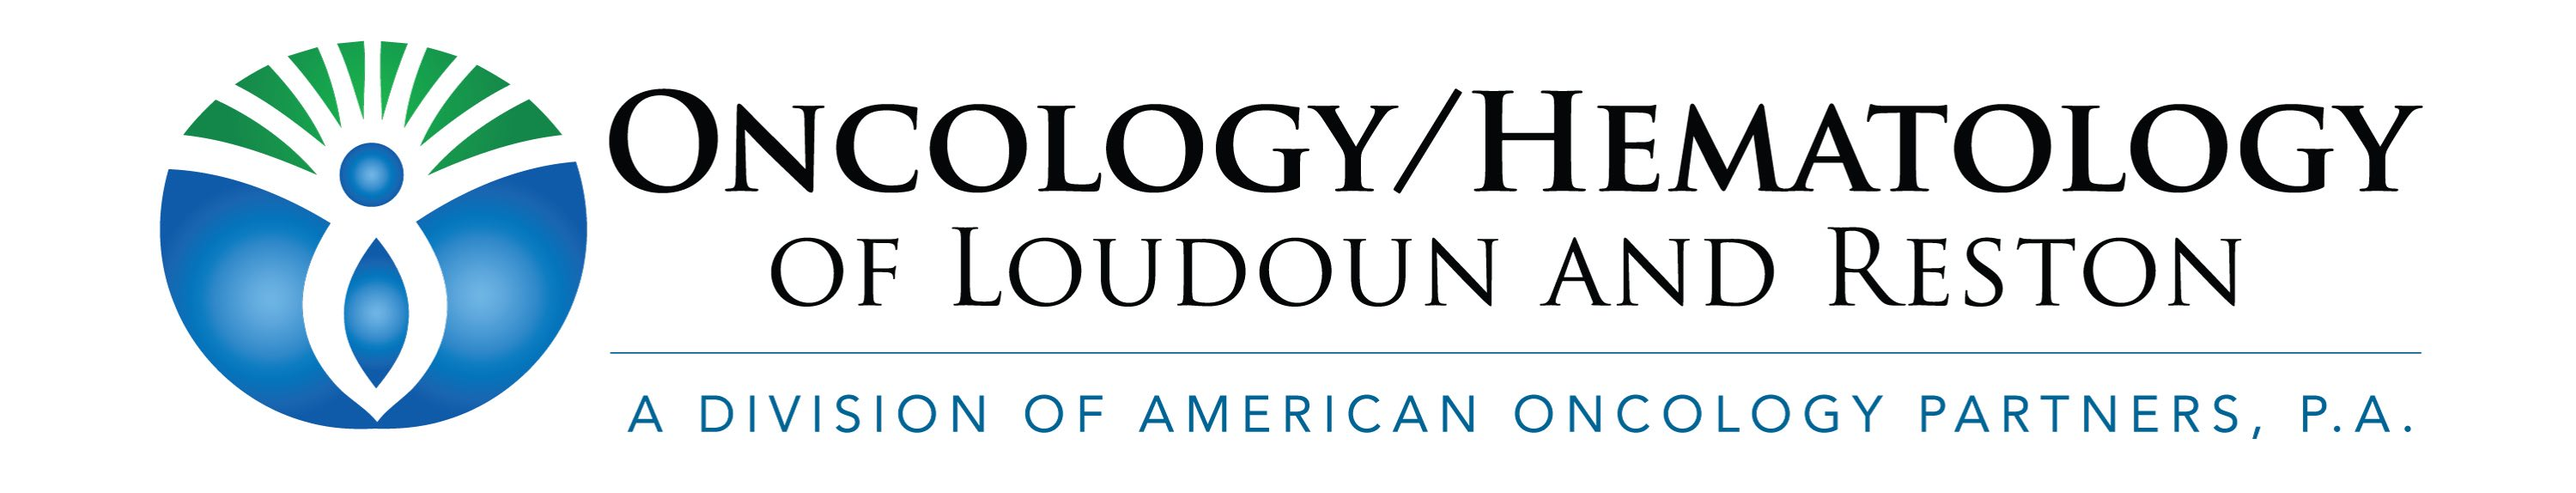 Oncology Hematology of Loudoun and Reston